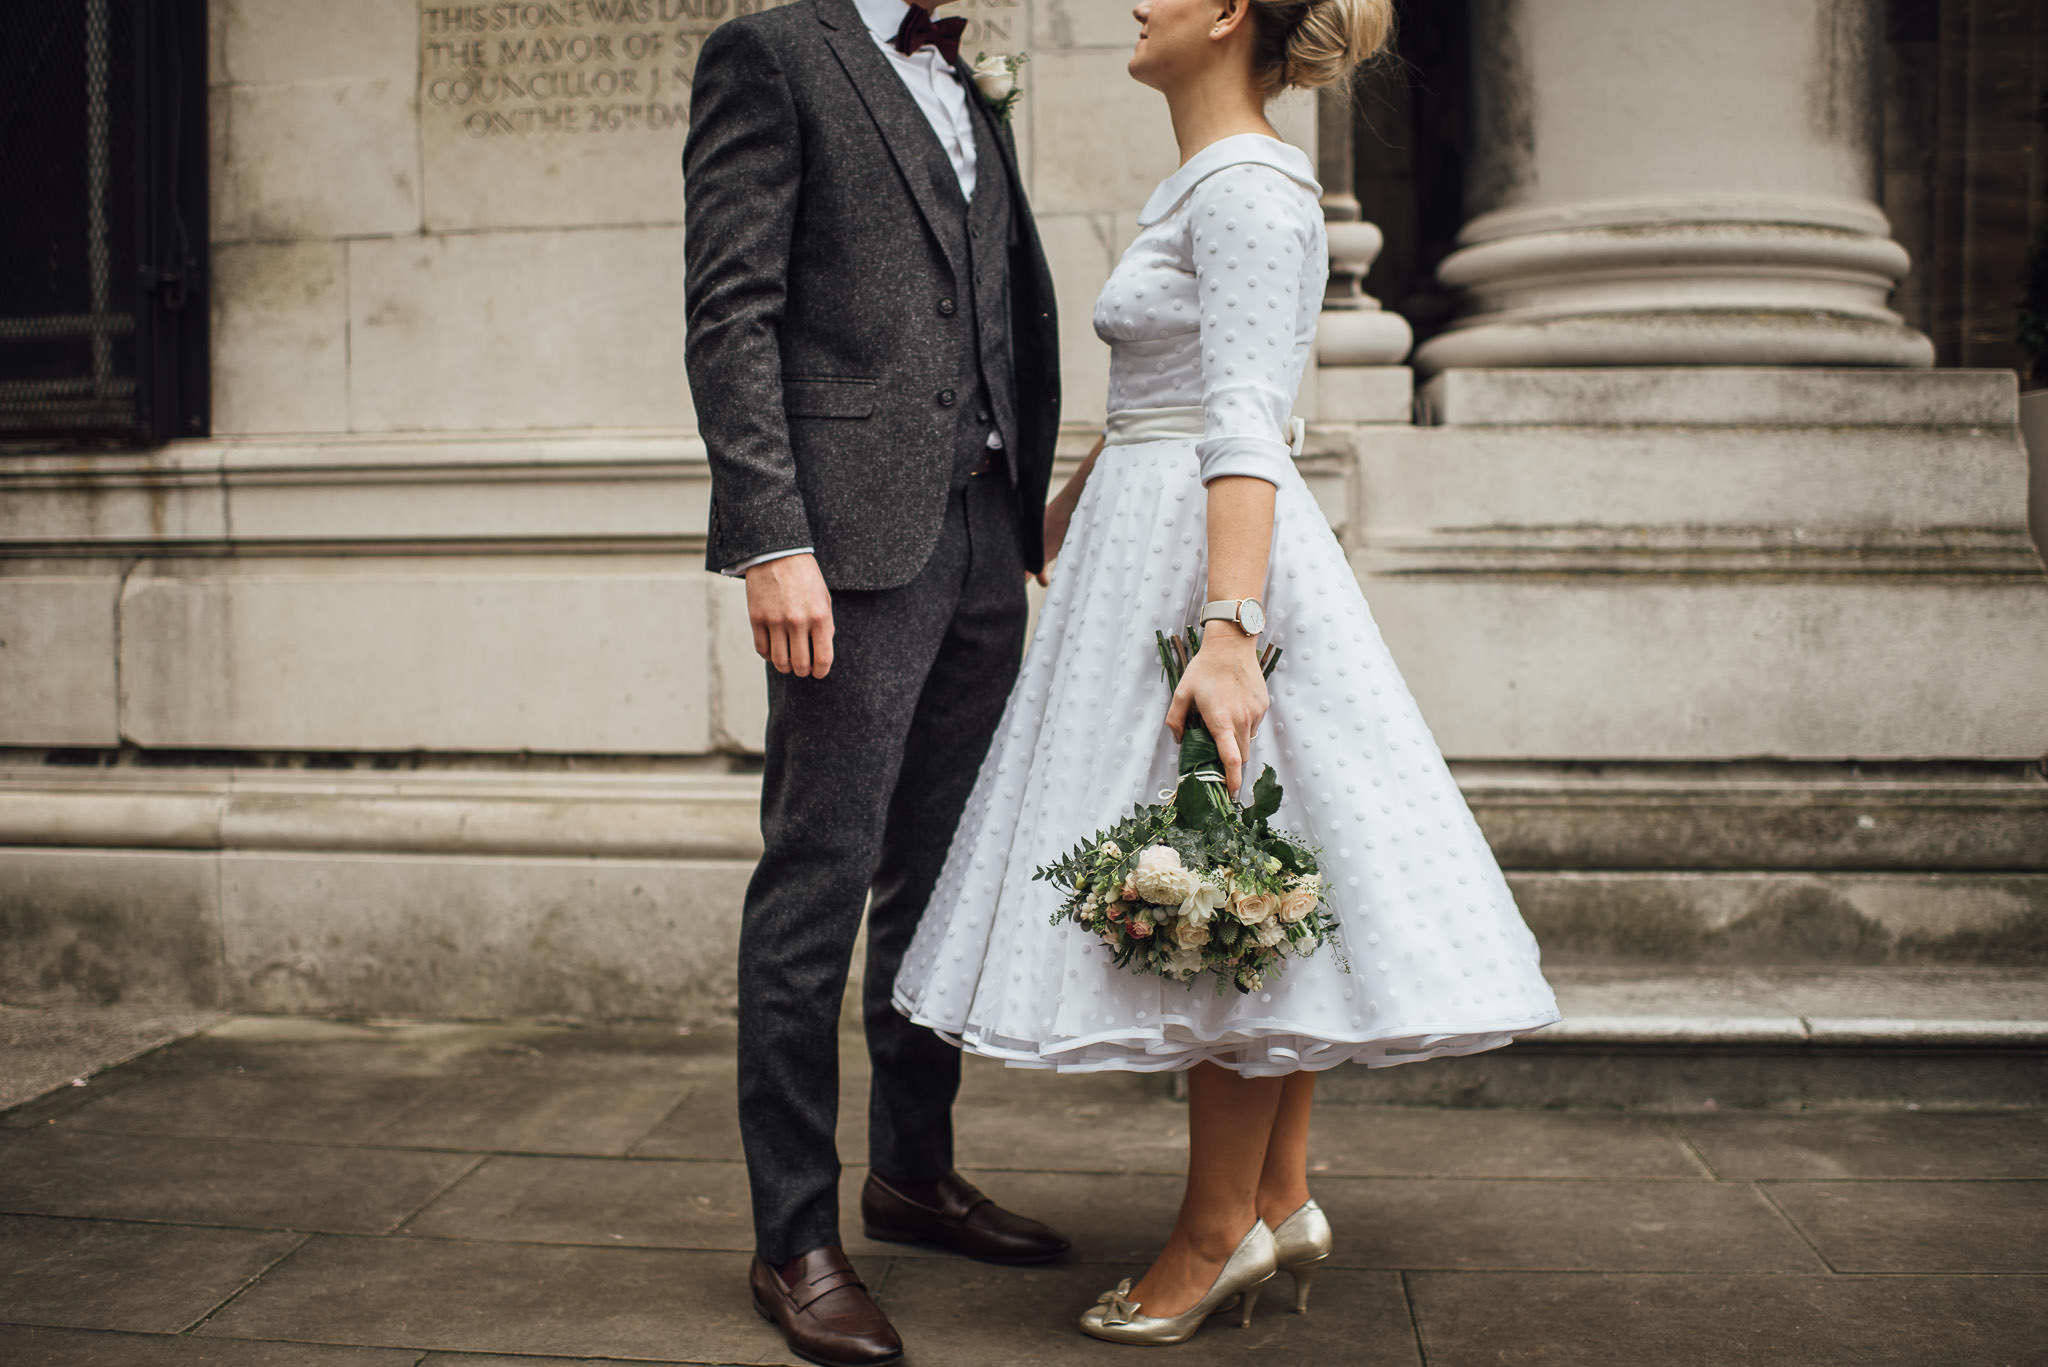 Vintage candy anthony wedding dress in stoke newington town hall wedding by creative and alternative london wedding photographer the shannons photography